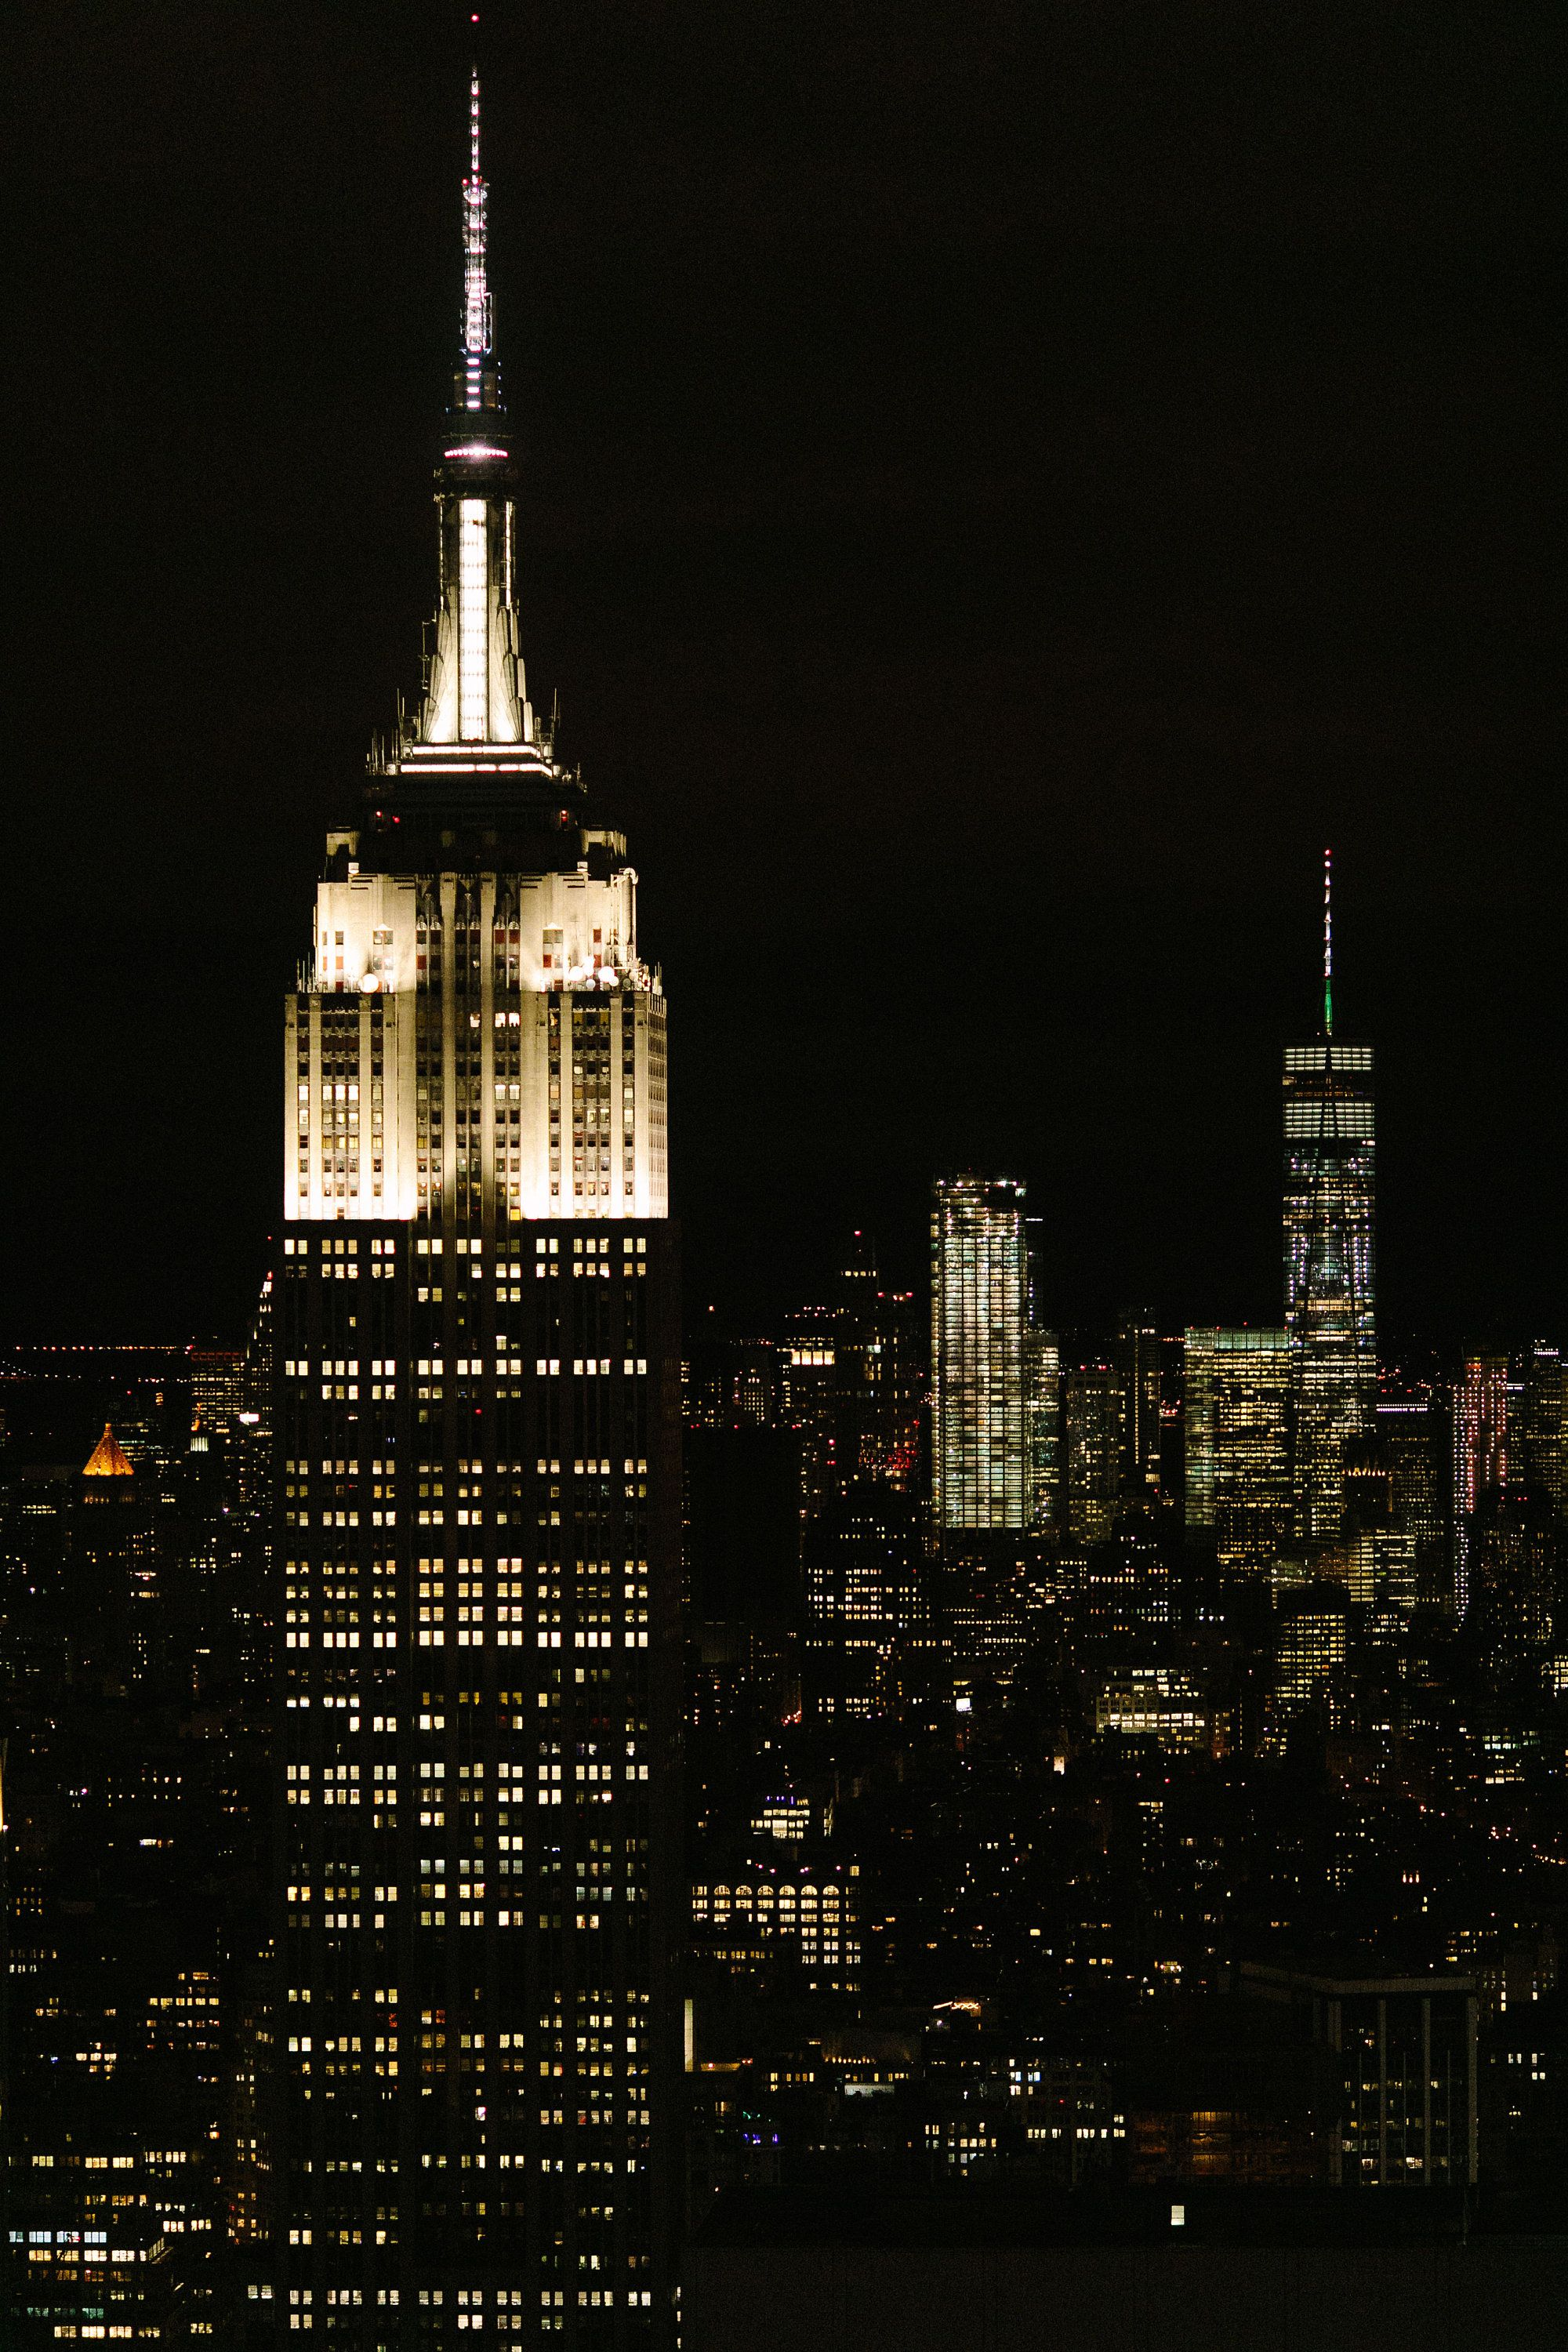 Vertical Photo Of Empire State Building At Night New York Skyline At Night Freedom One Tower At Night Nighttime In New York City Empire State Building Empire State New York Wallpaper